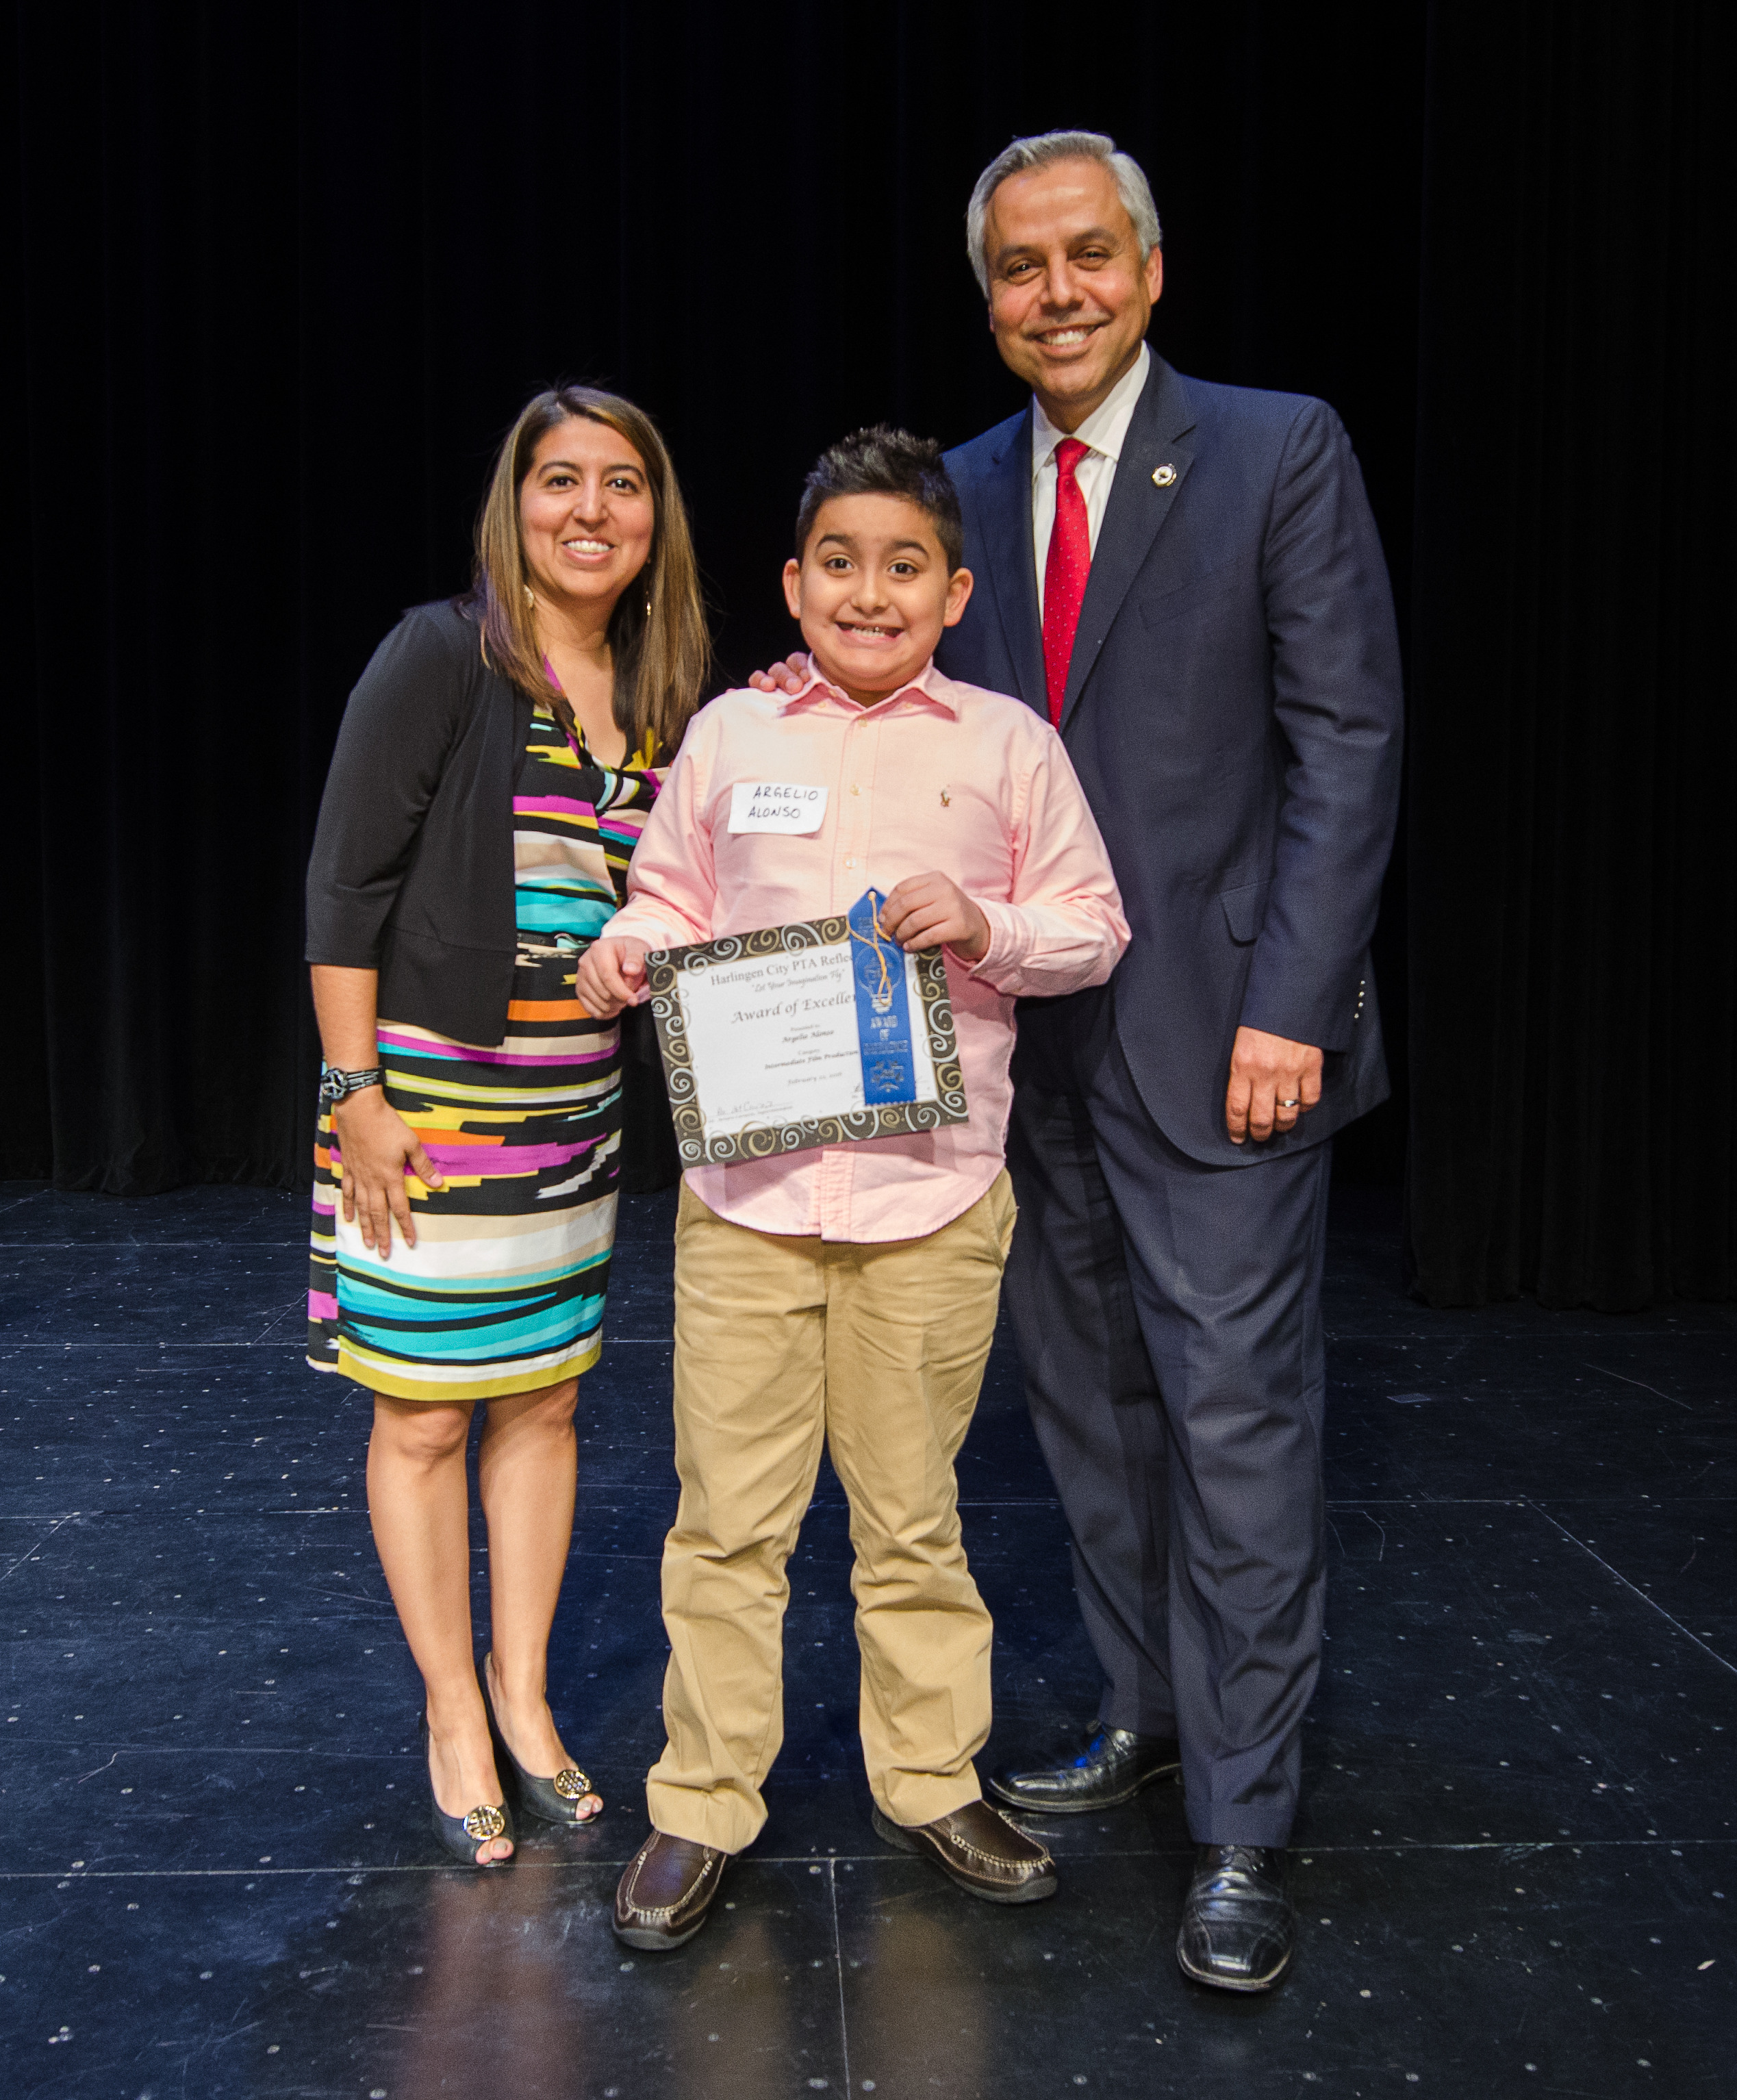 Milam Elementary student advances to National PTA Reflections Contest